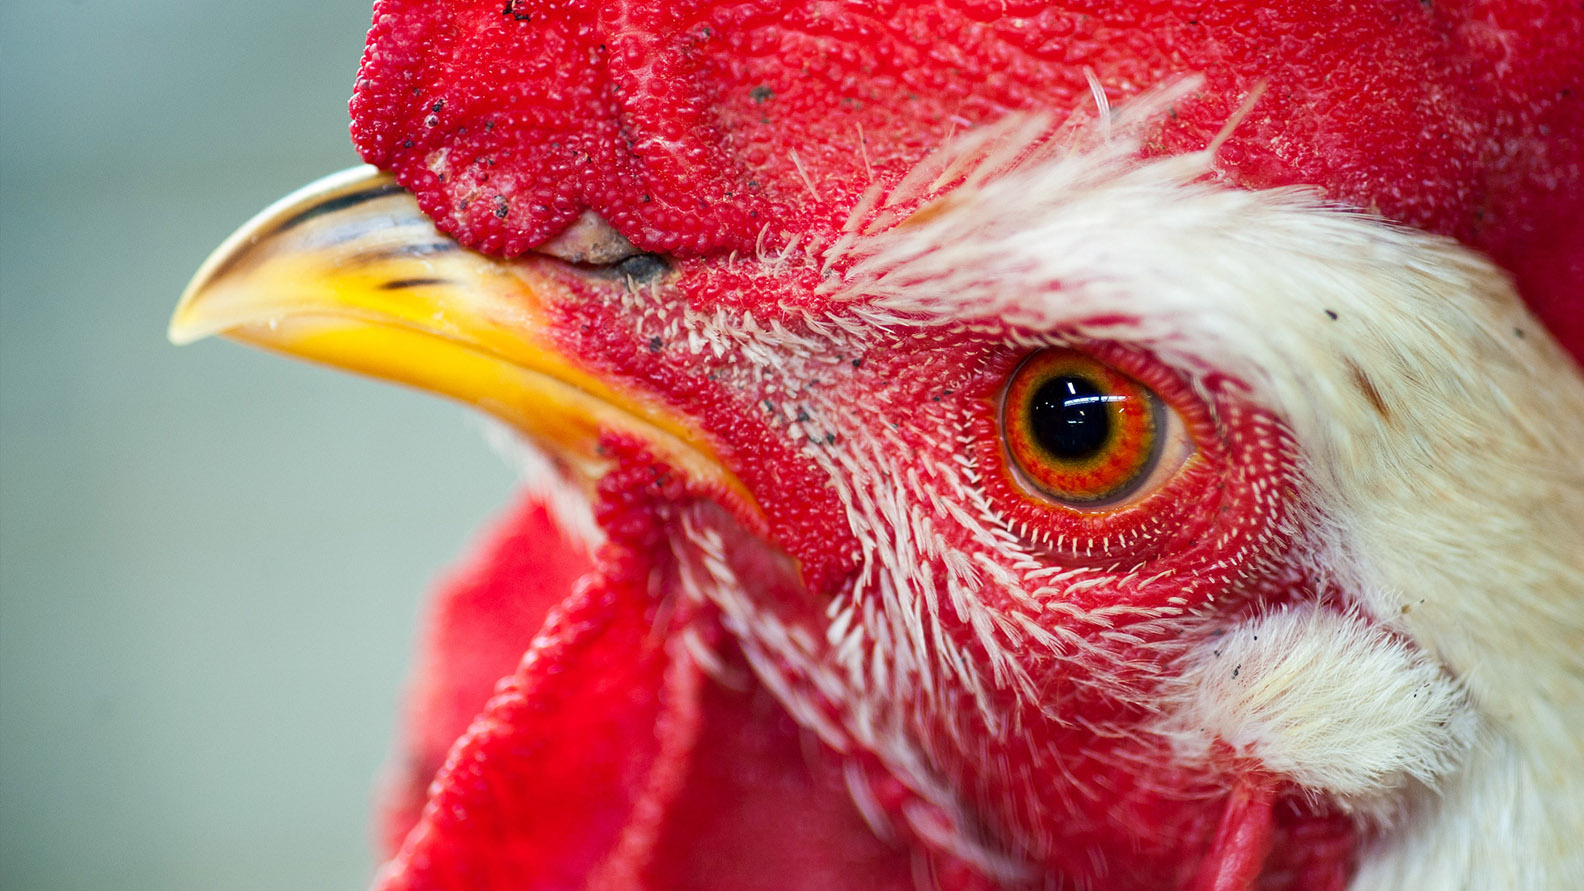 A macro shot of a roosters' head and eye at the 97th Annual Pennsylvania Farm Show